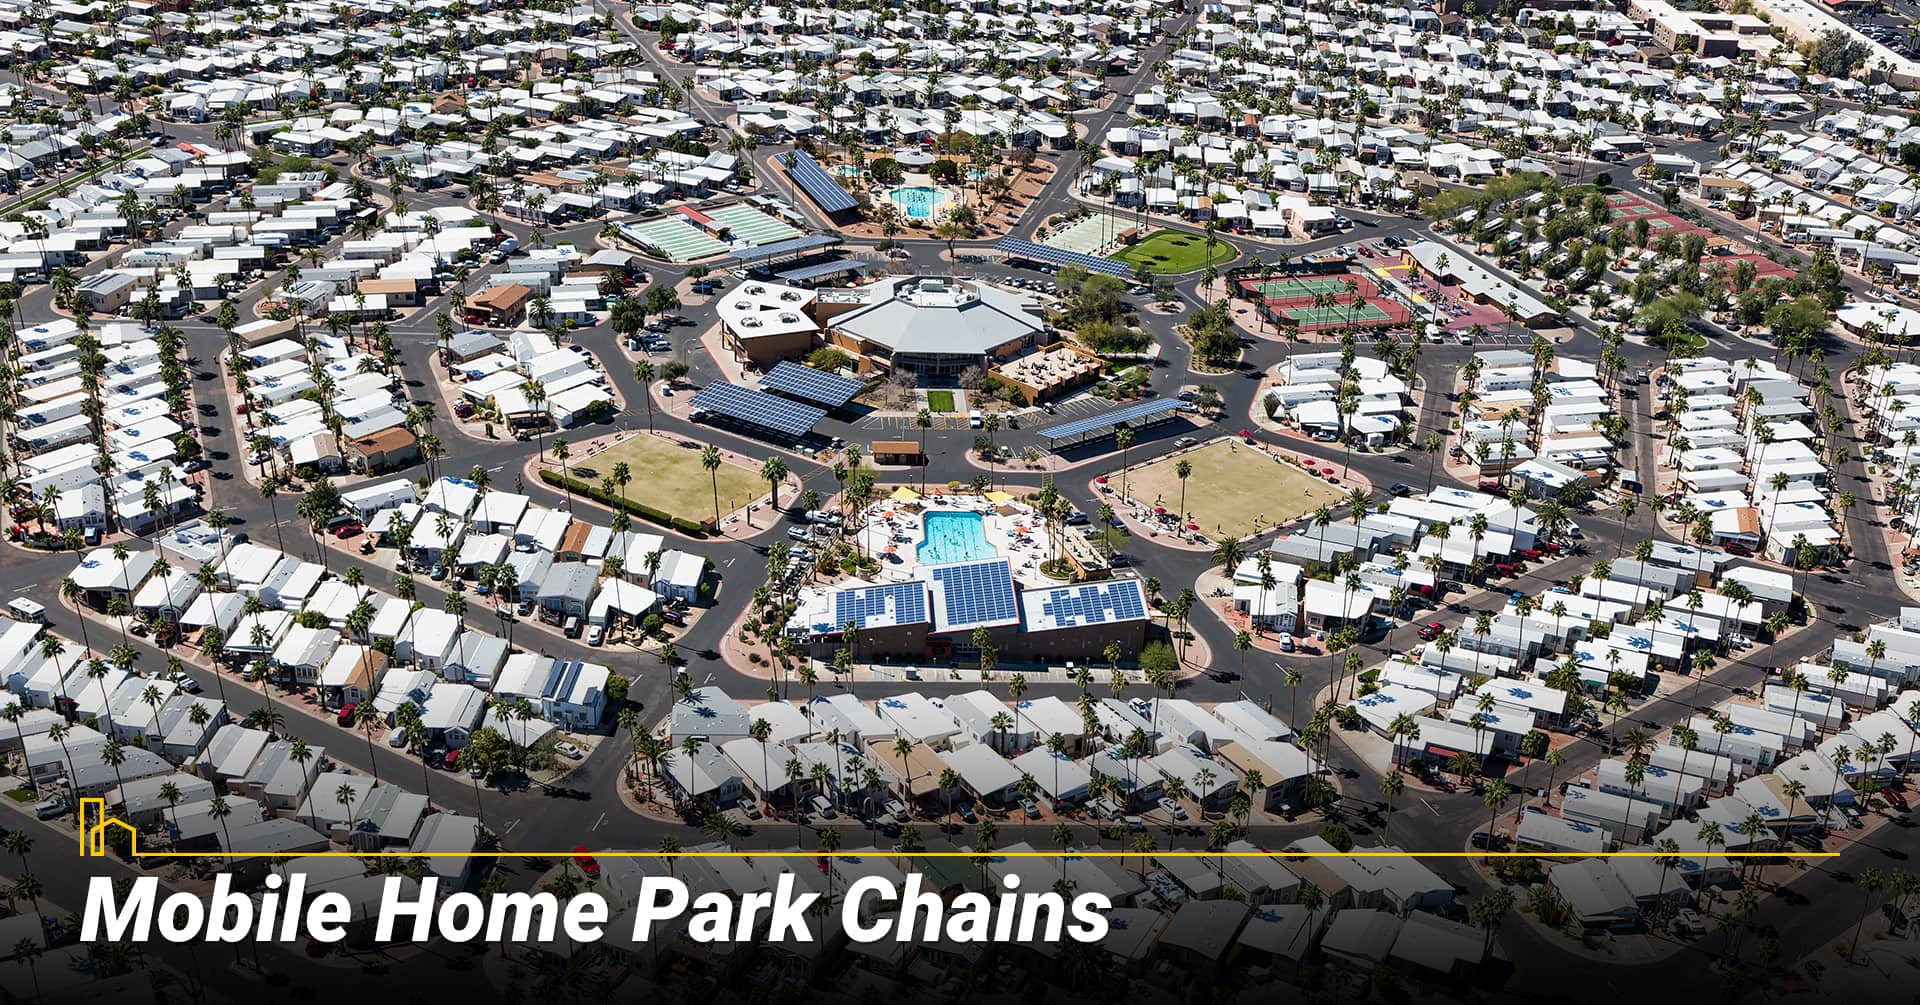 Mobile Home Park Chains, mobile home communities